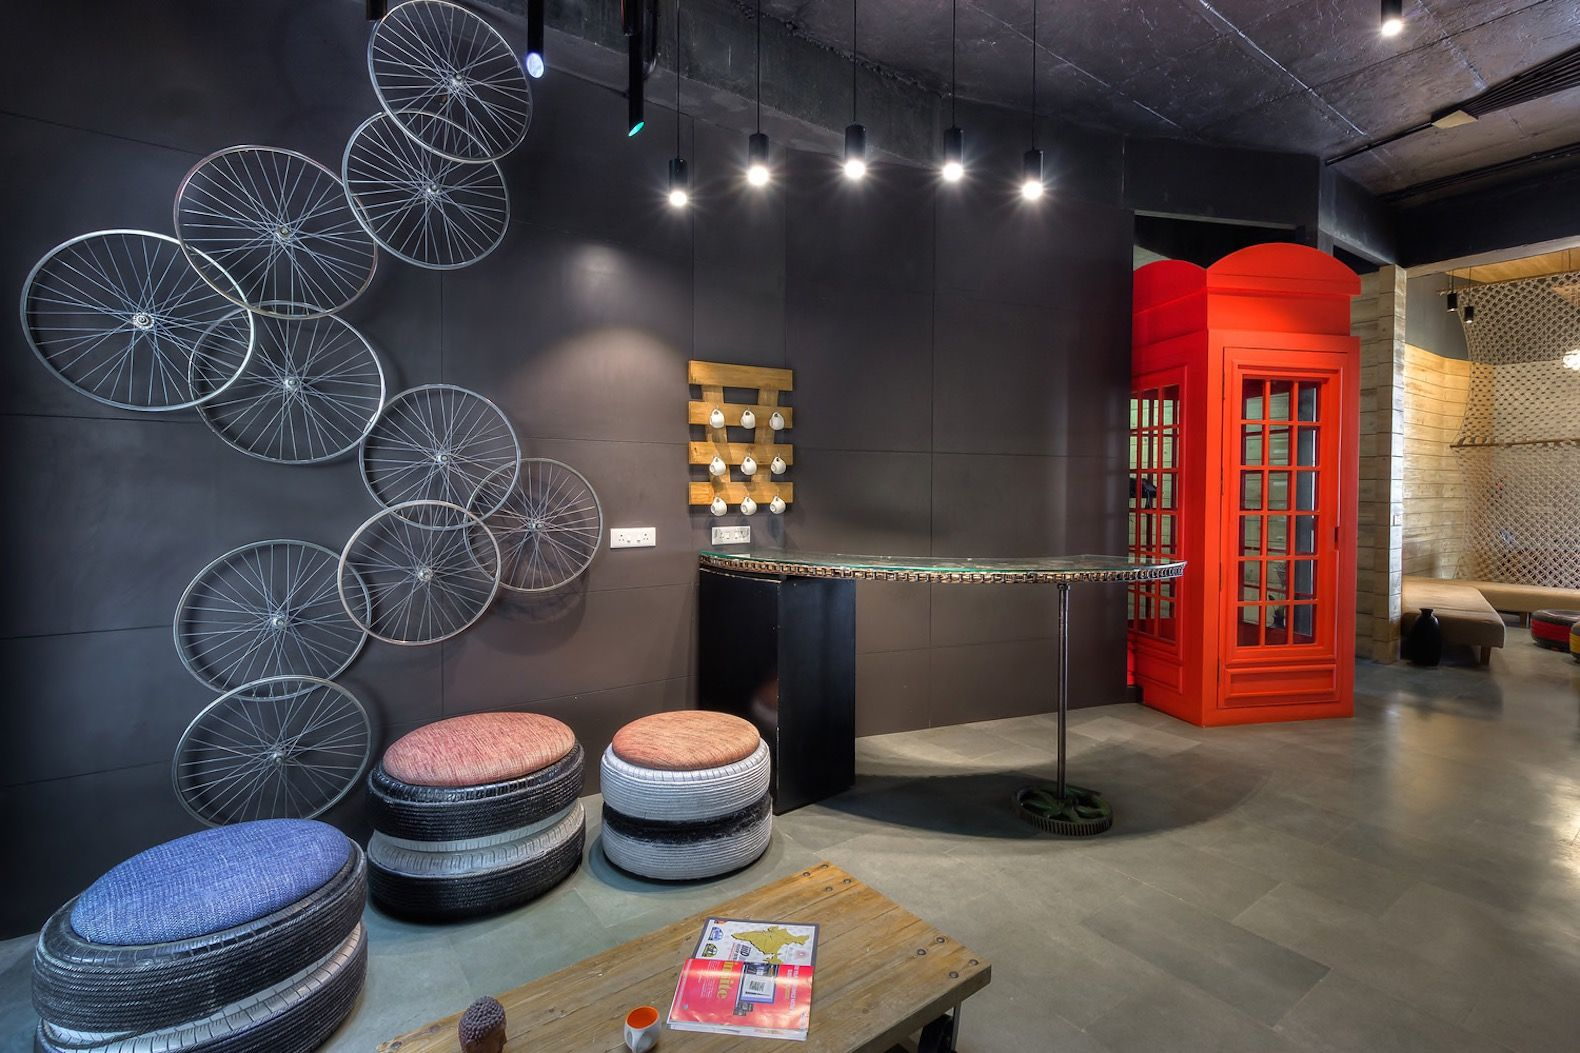 Architects Creatively Upcycle Waste Into A Surprisingly Chic